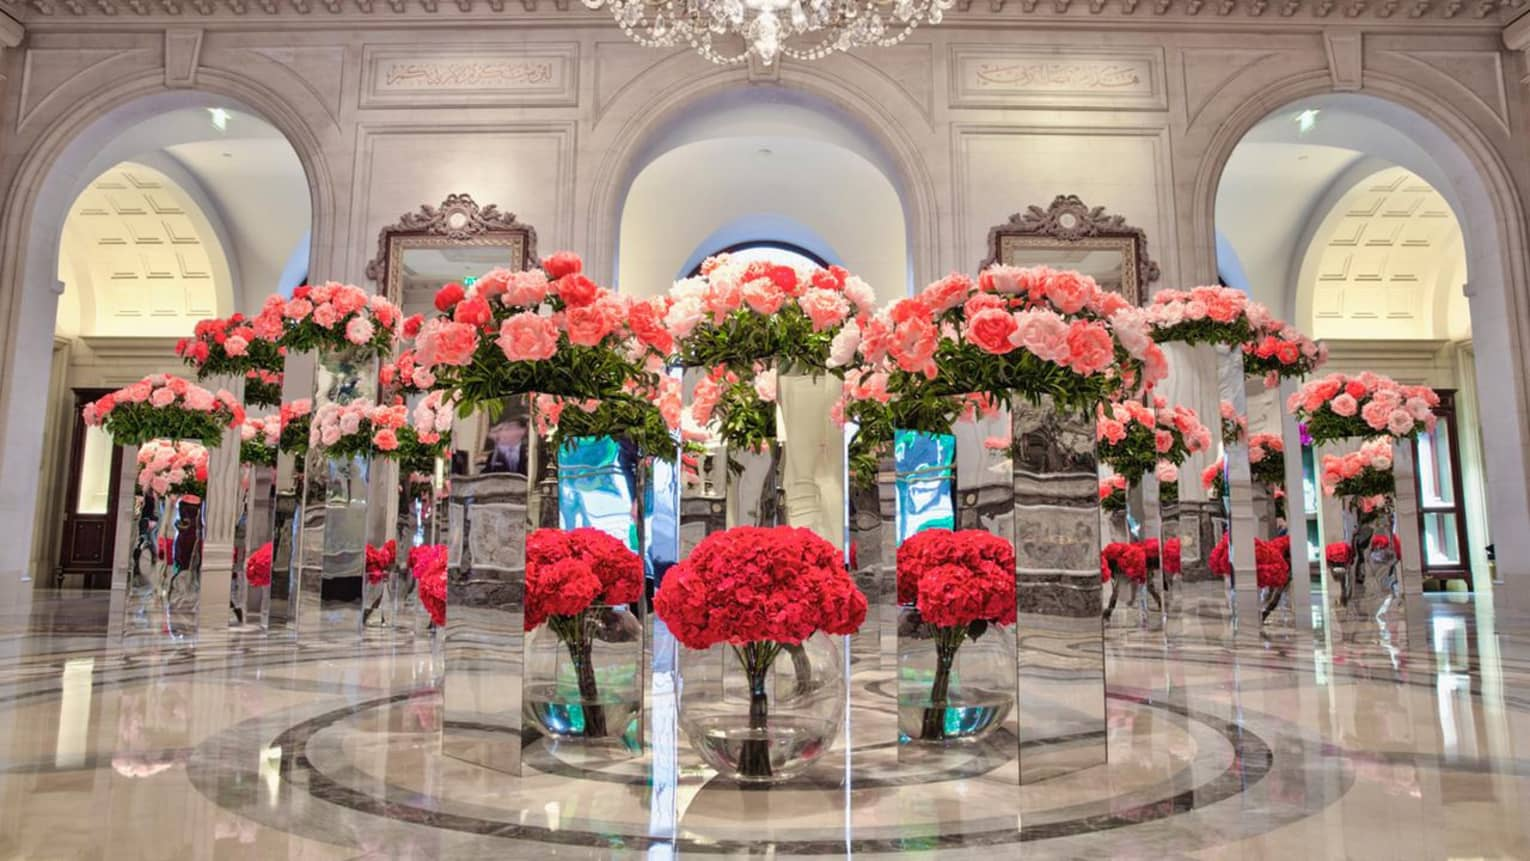 White marble lobby with multiple glass podiums with red and pink flower arrangements